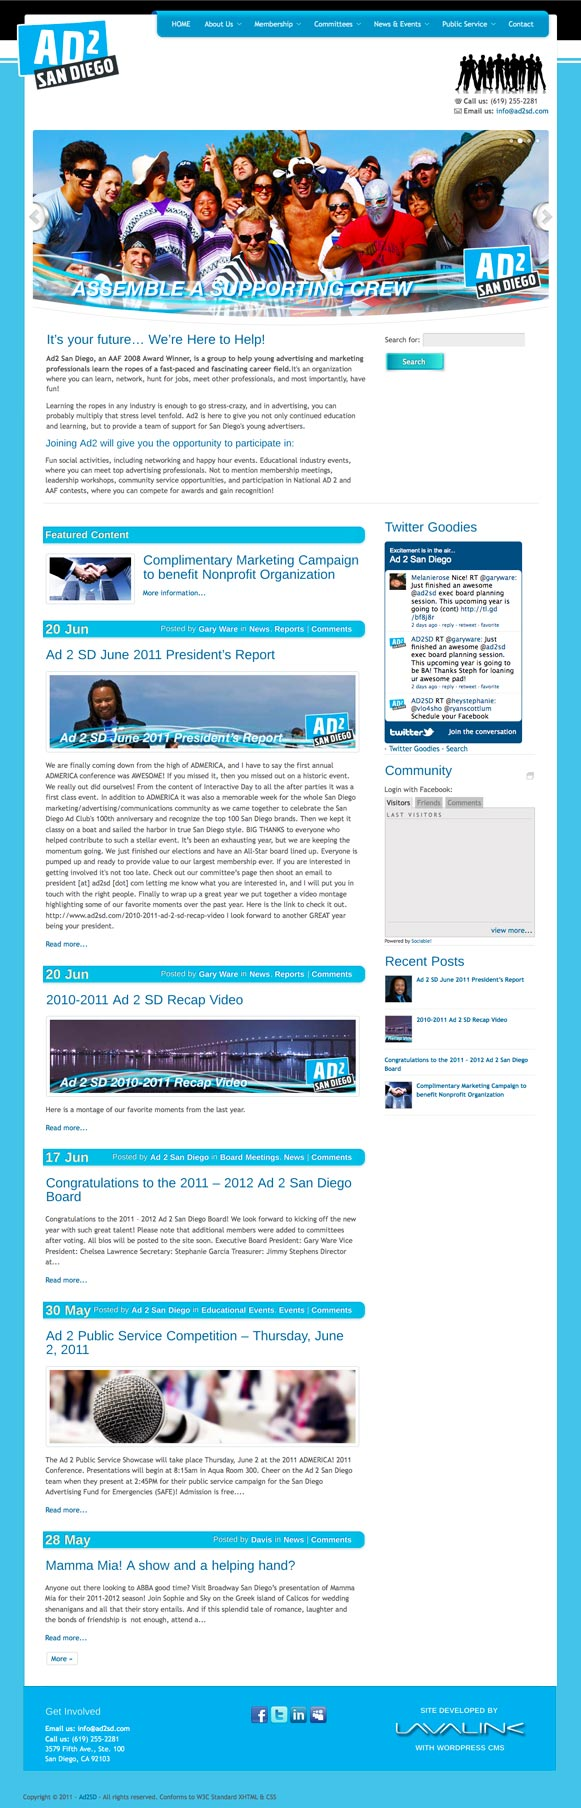 The homepage for Ad2 San Diego, advertising organization.